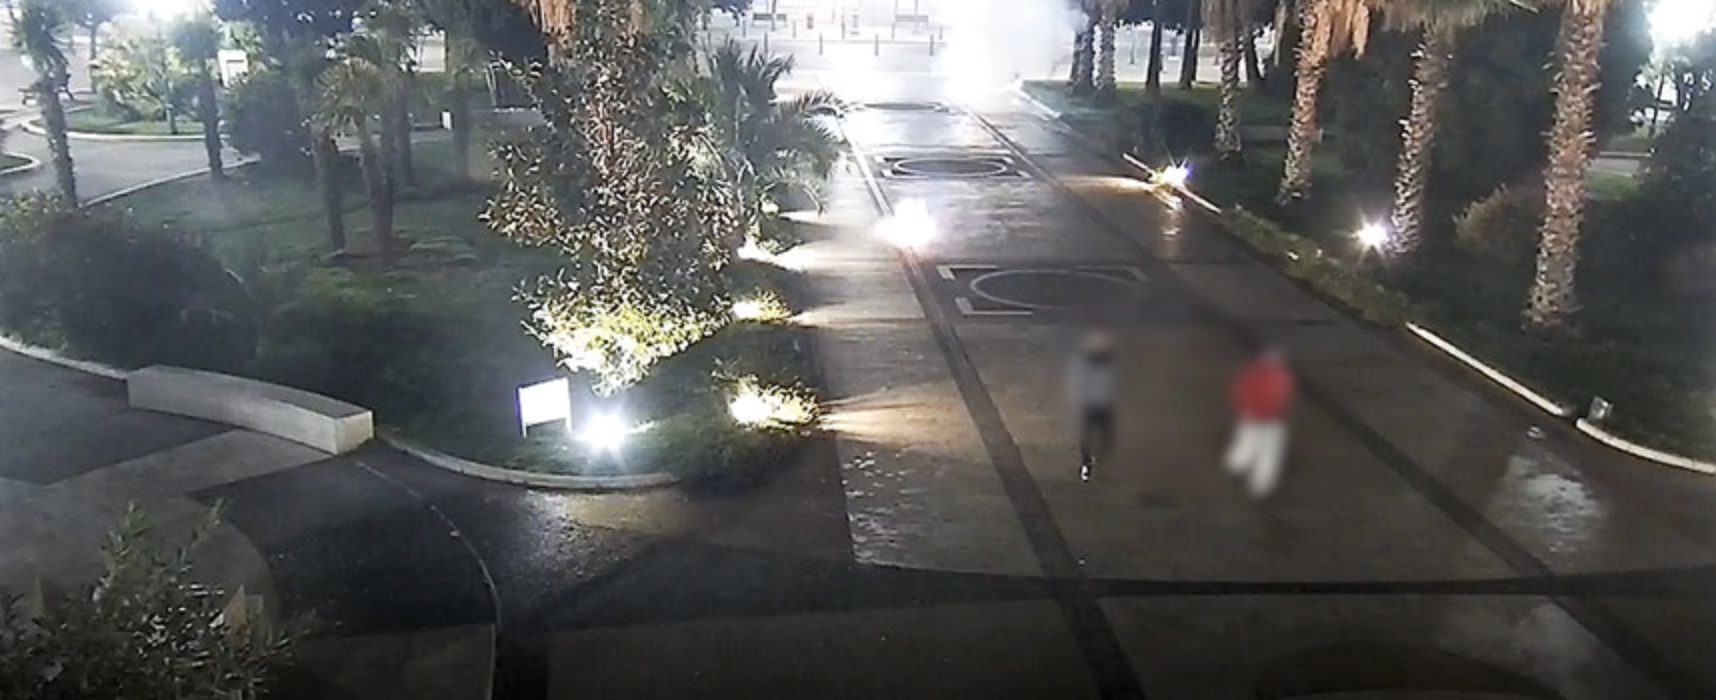 Fa esplodere petardo in piazza, 19enne multato da Polizia Locale / VIDEO